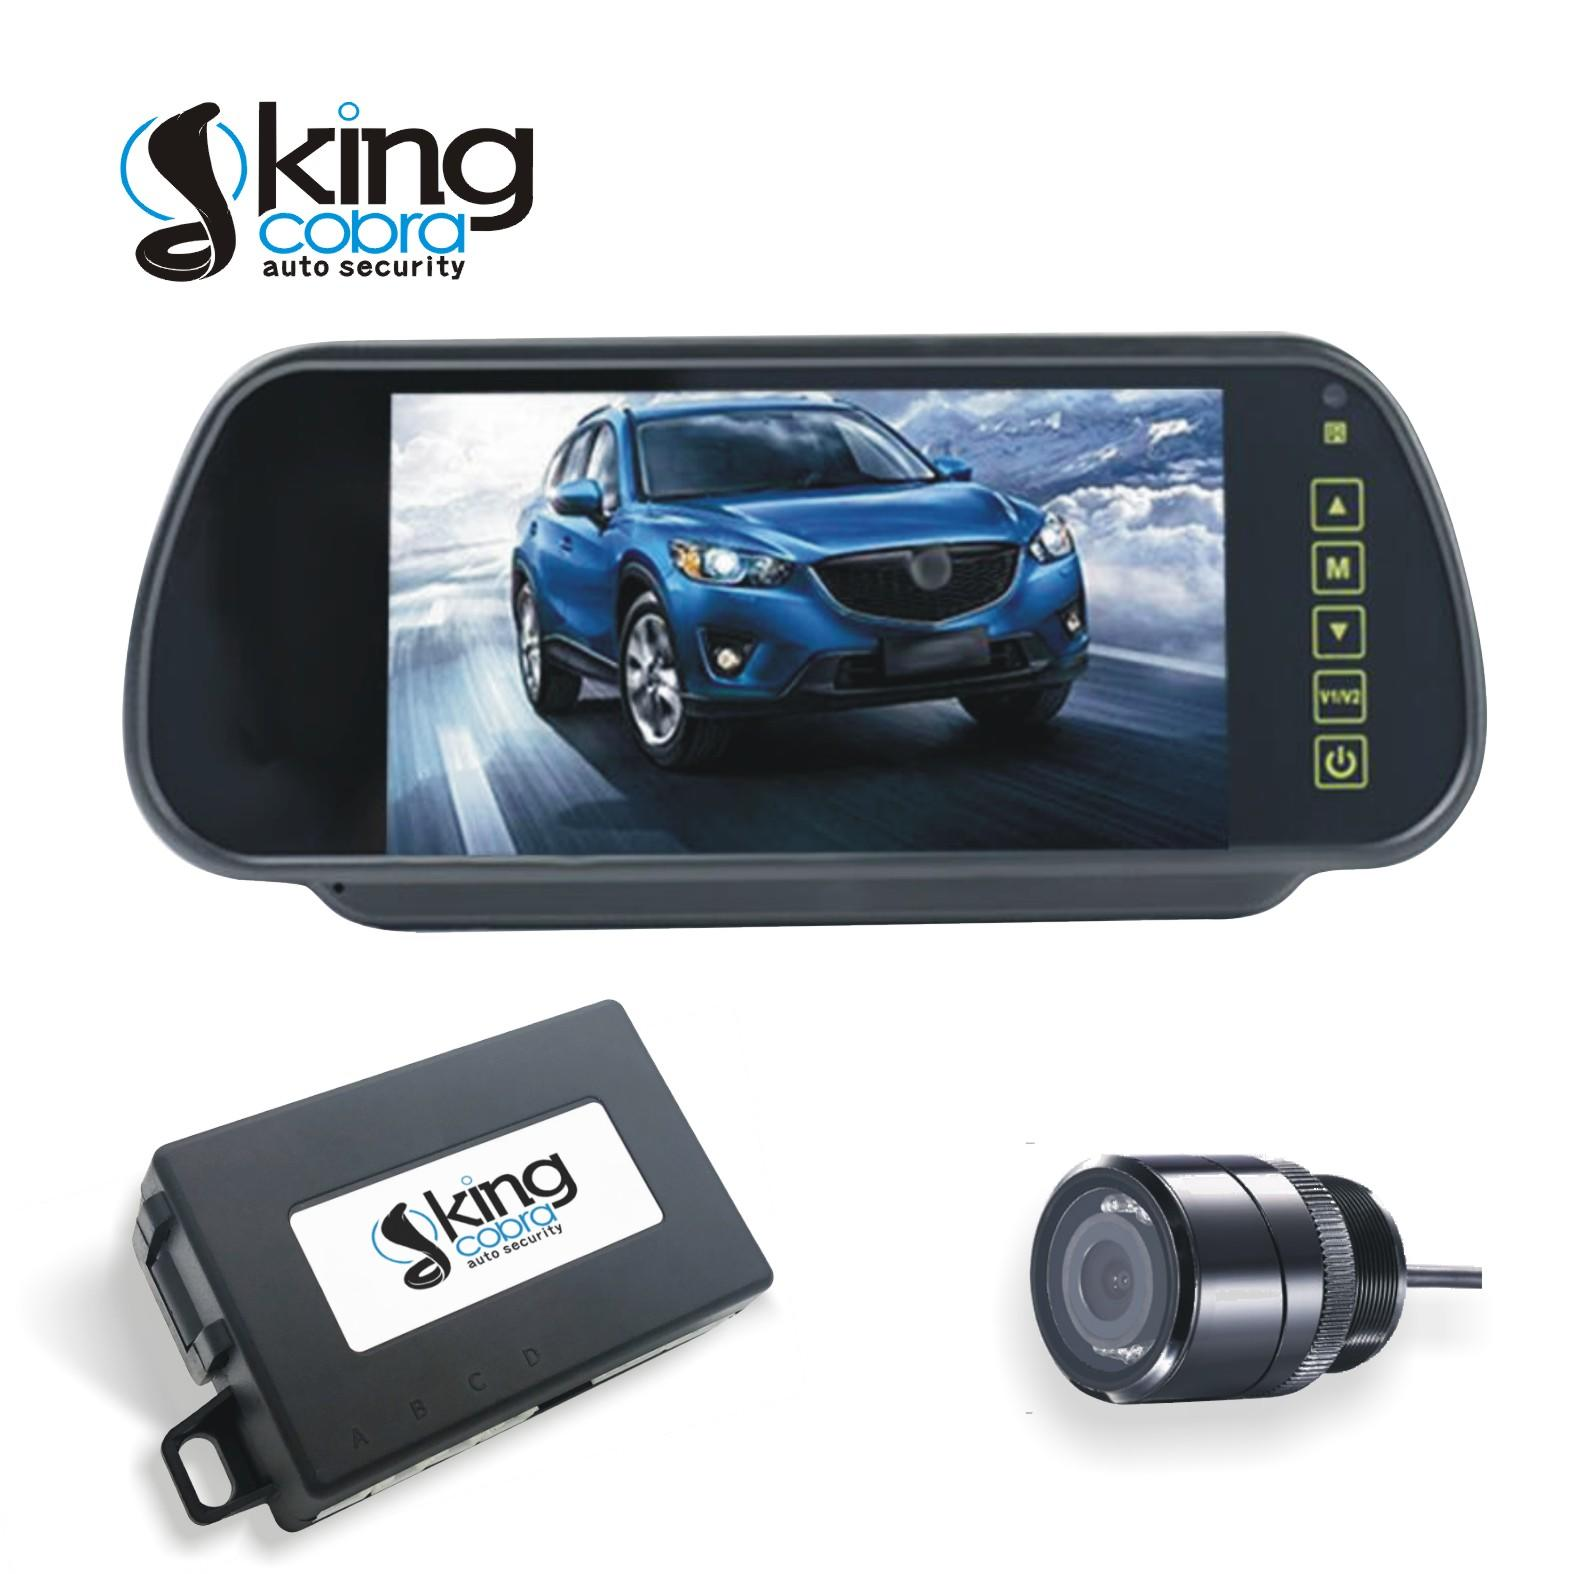 Kingcobra Brand kc6000i accessories parking sensors review digital